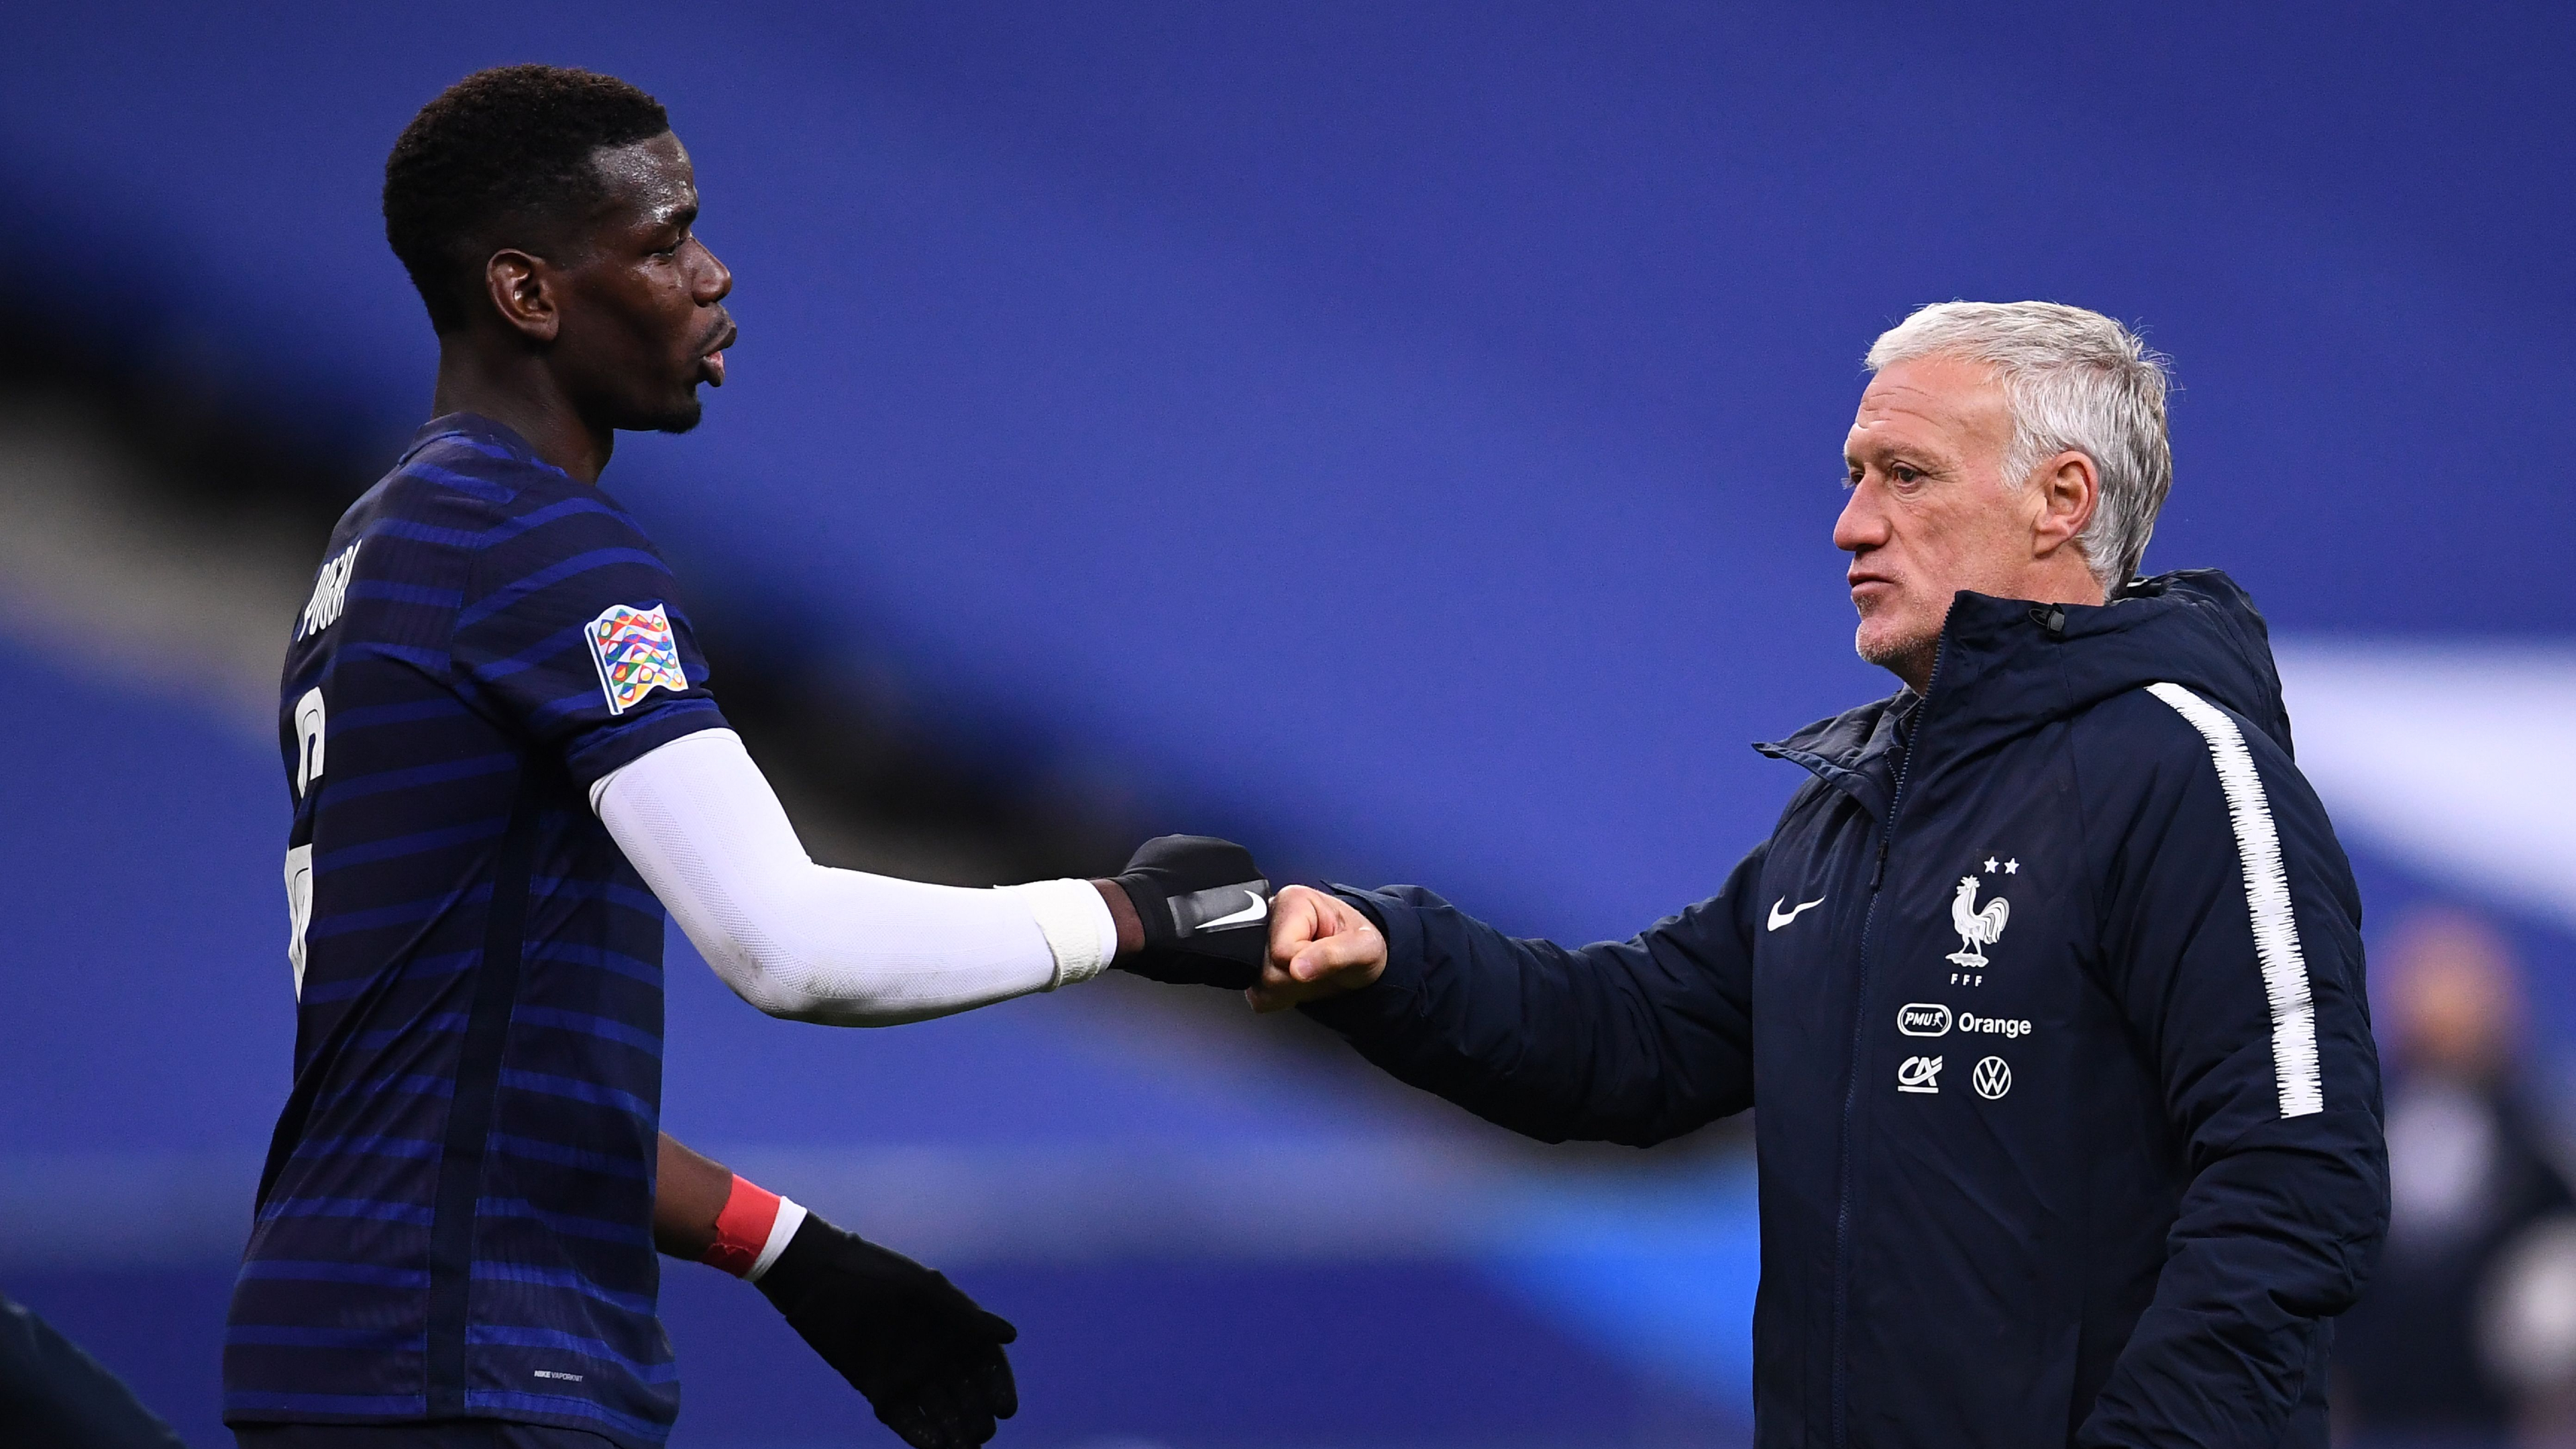 'He is a leader' - Lloris praises Man Utd star Pogba after France draw